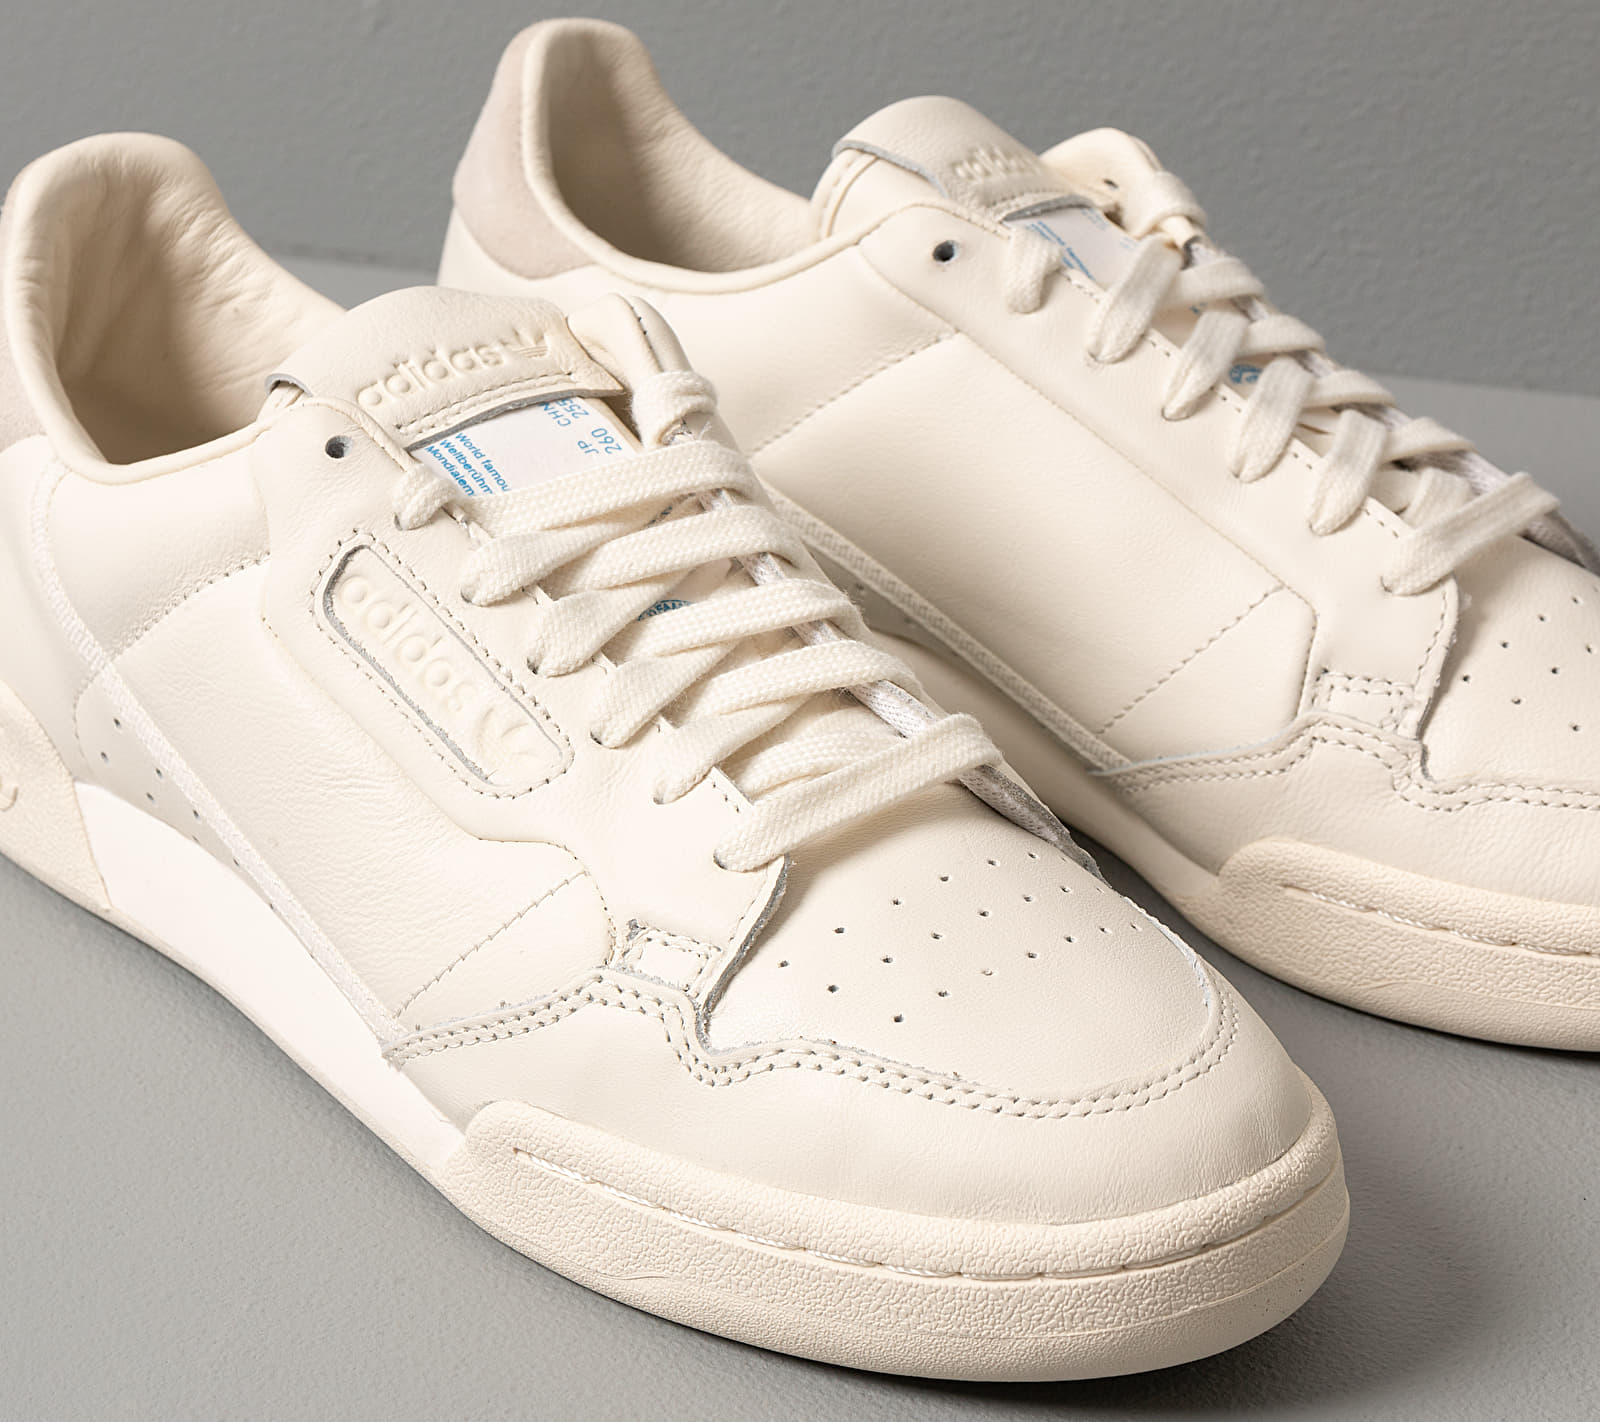 adidas Continental 80 Off White Off White Off White, Brown